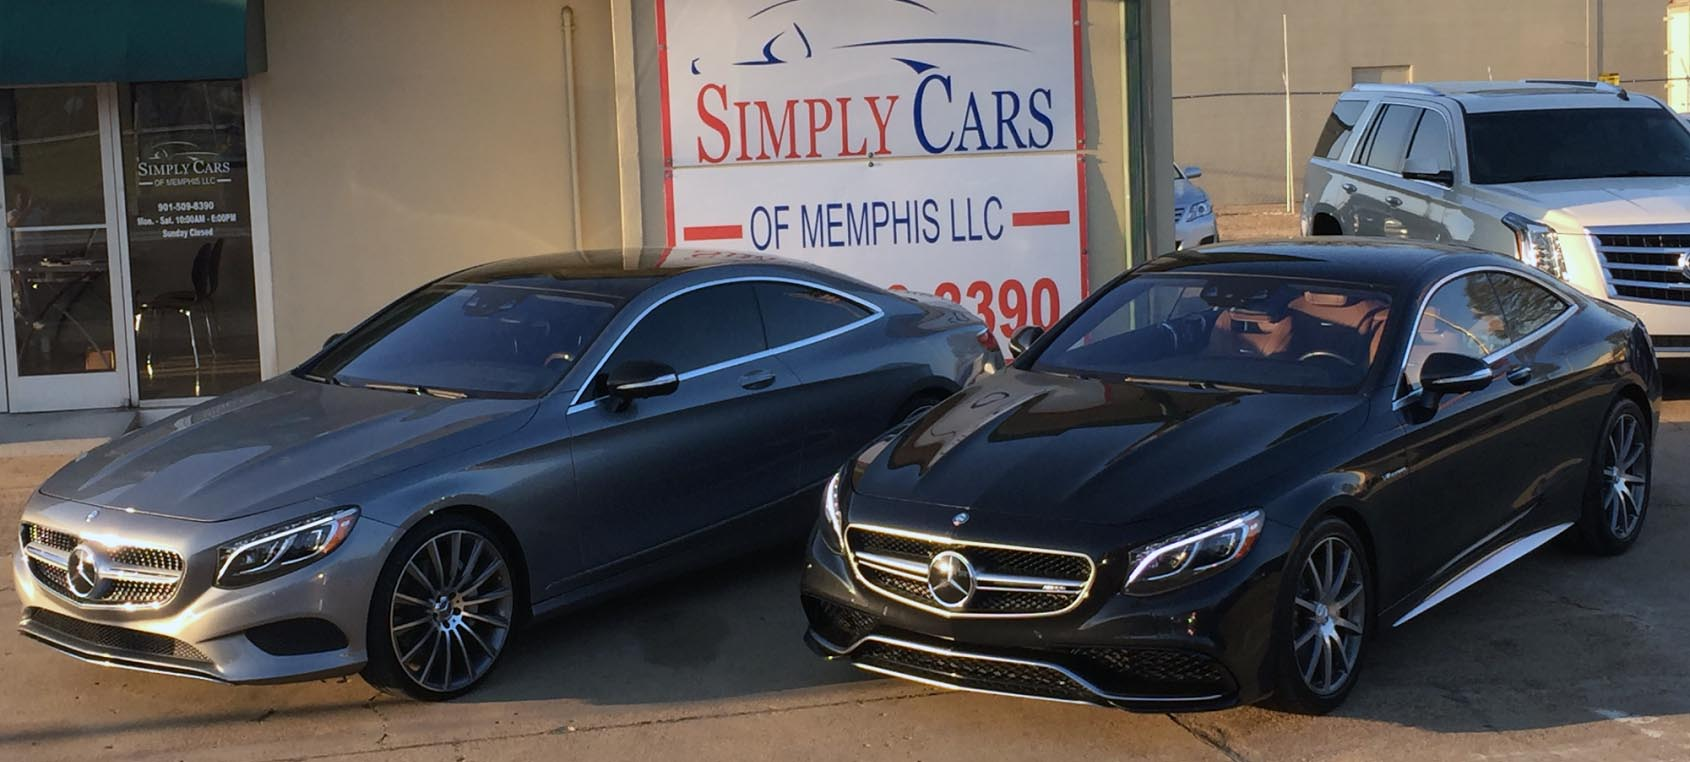 Home | Simply Cars of Memphis, LLC. | Used Cars For Sale - Memphis, TN